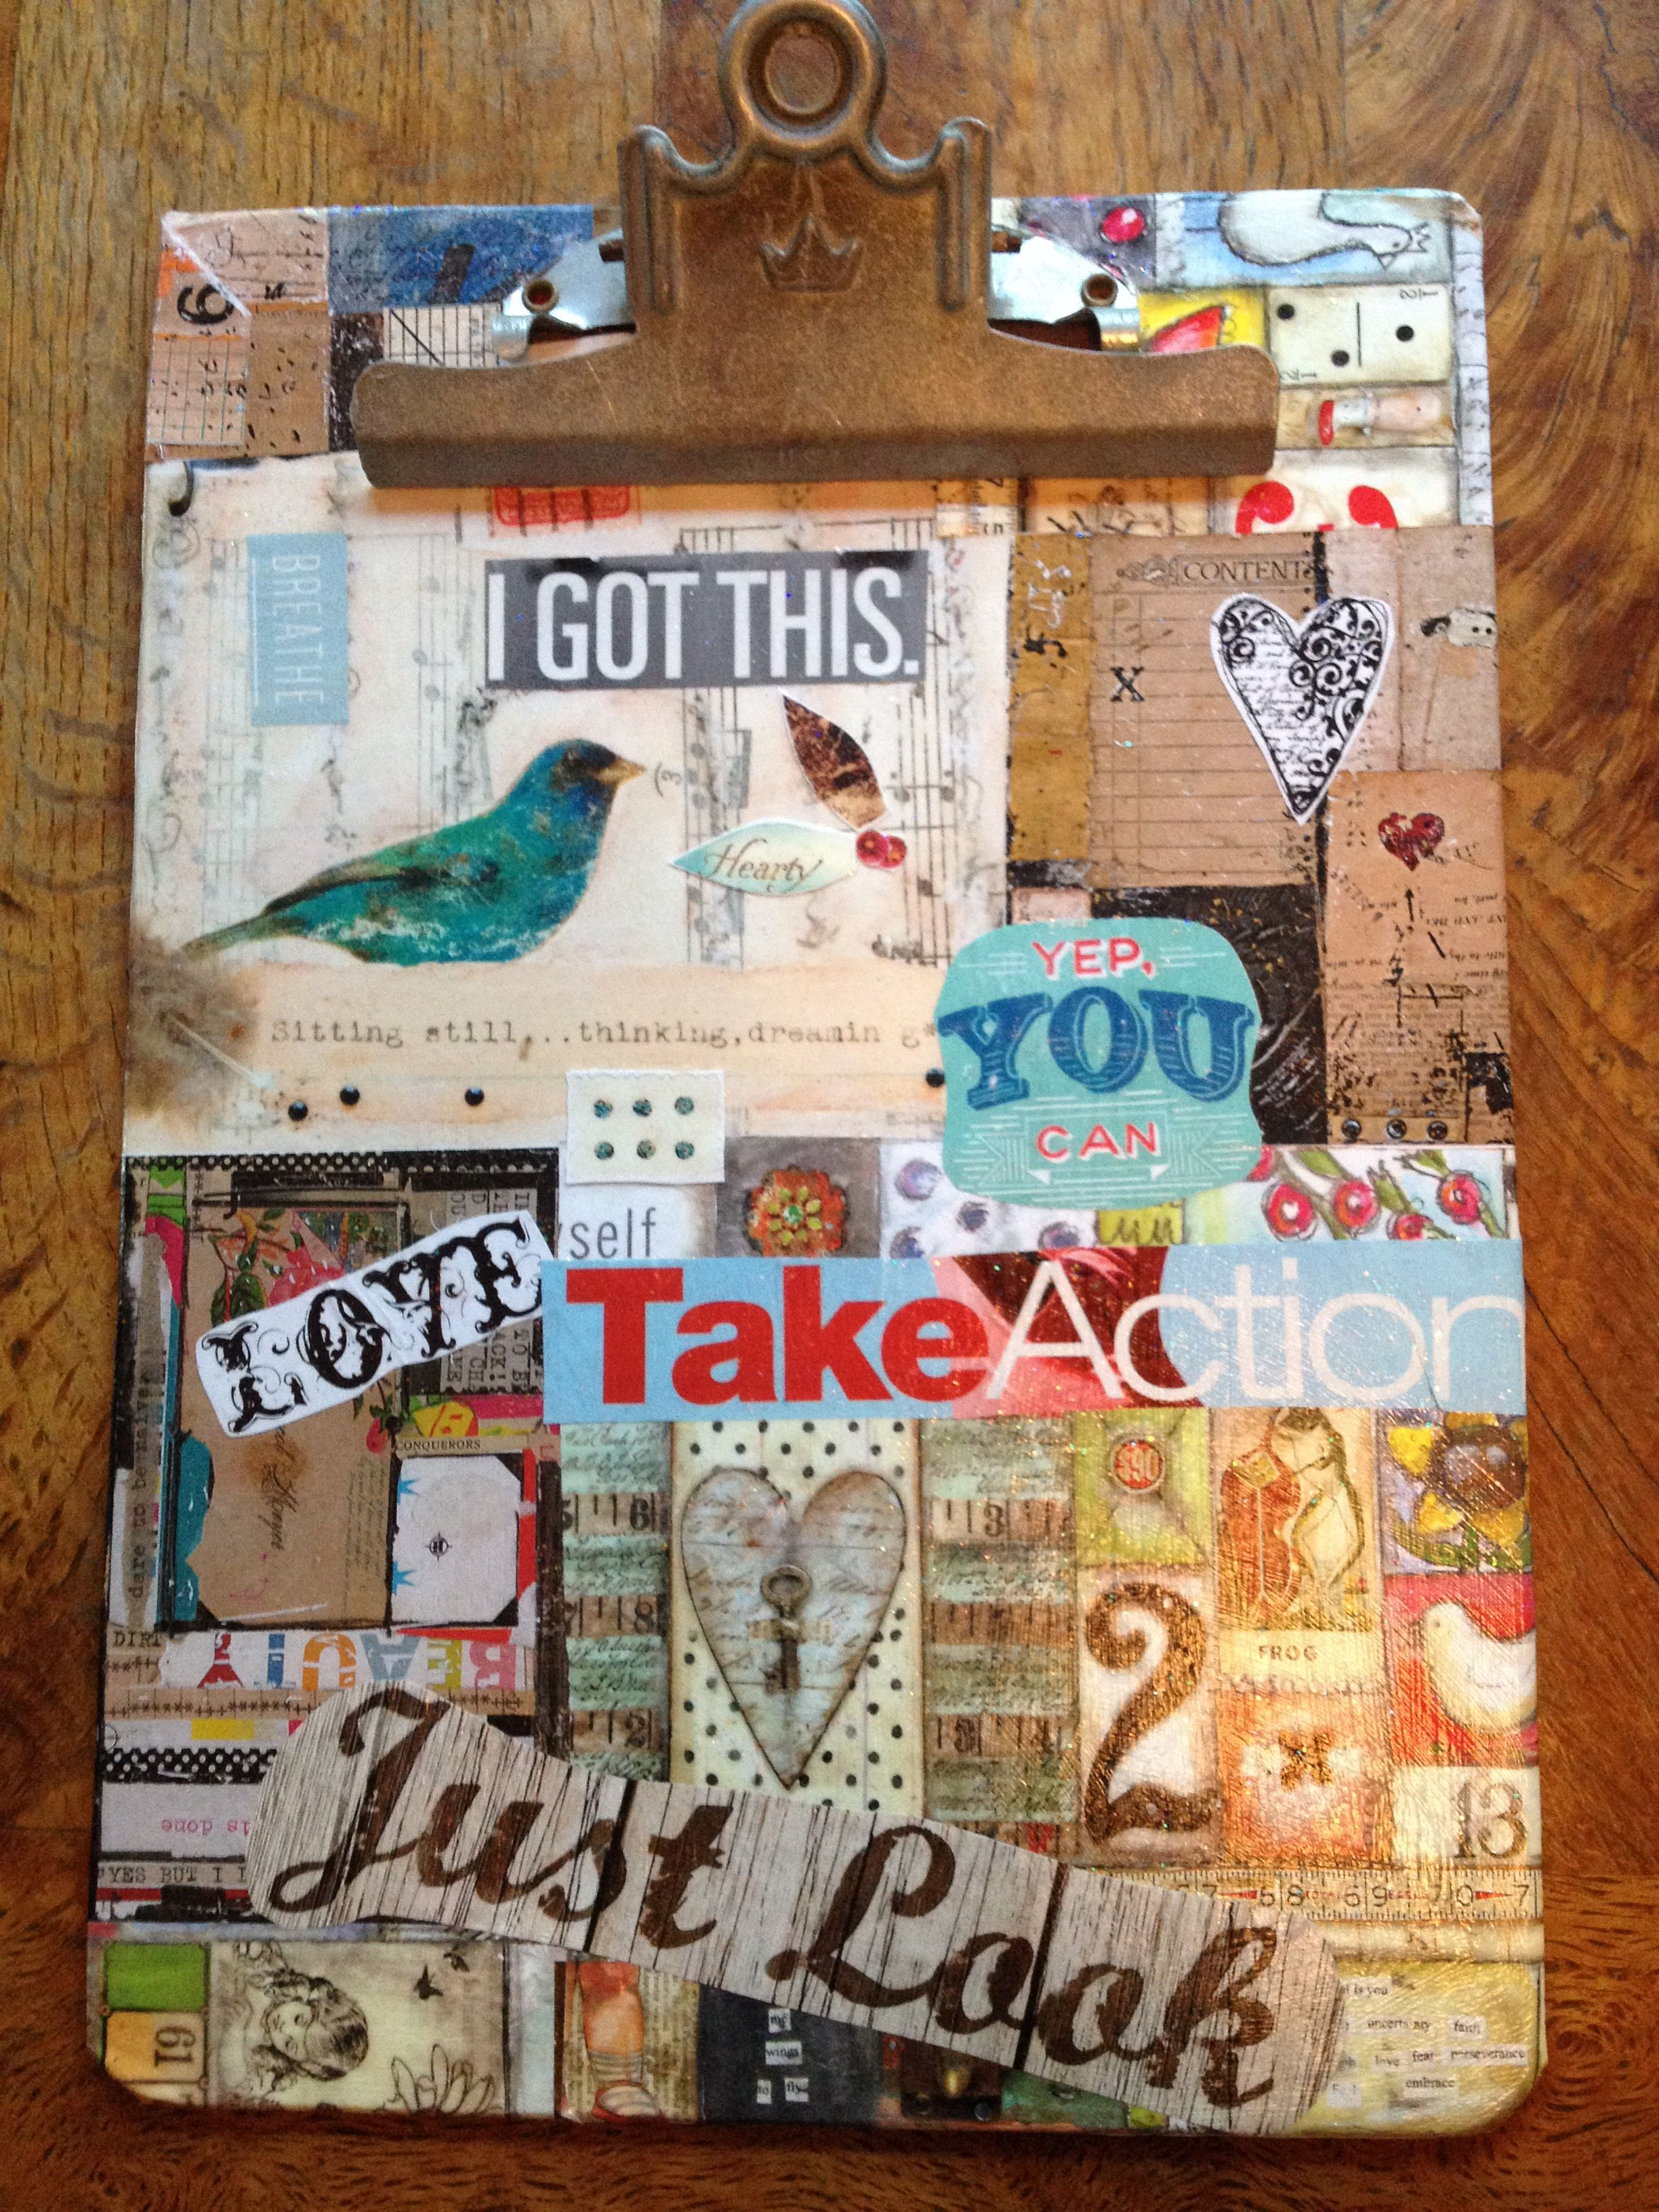 I got this! 2014 collage clip board